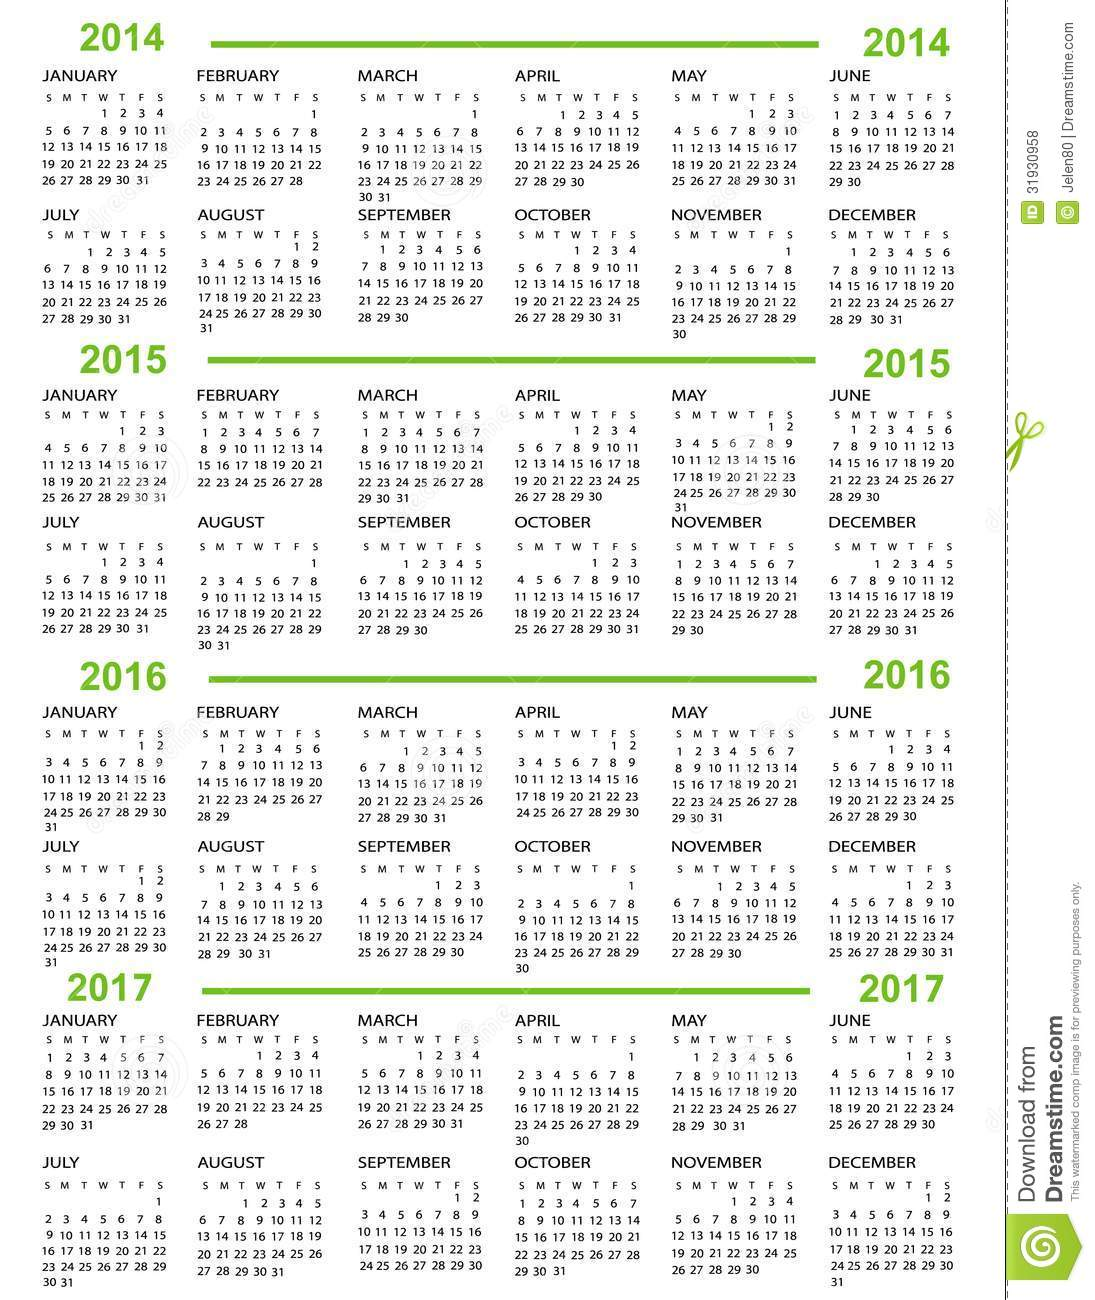 Gregorian Calendar 2014 And 2015 Year 2014 Calendar Time And Date Calendar New Year 2014 2015 2016 2017 Royalty Free Stock